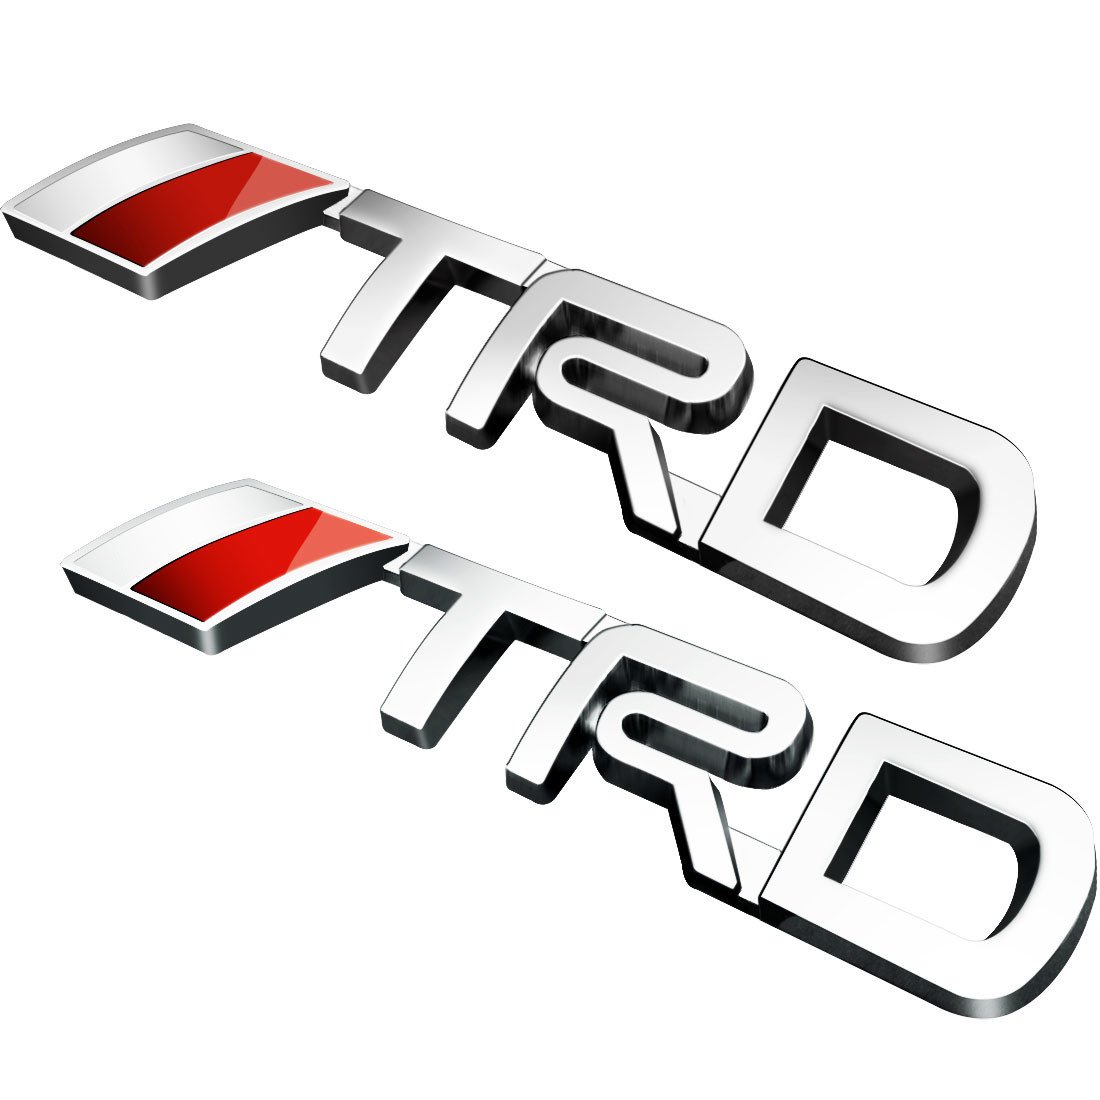 Deselen lp bs09a toyota trd car emblem chrome stickers decals badge labeling for